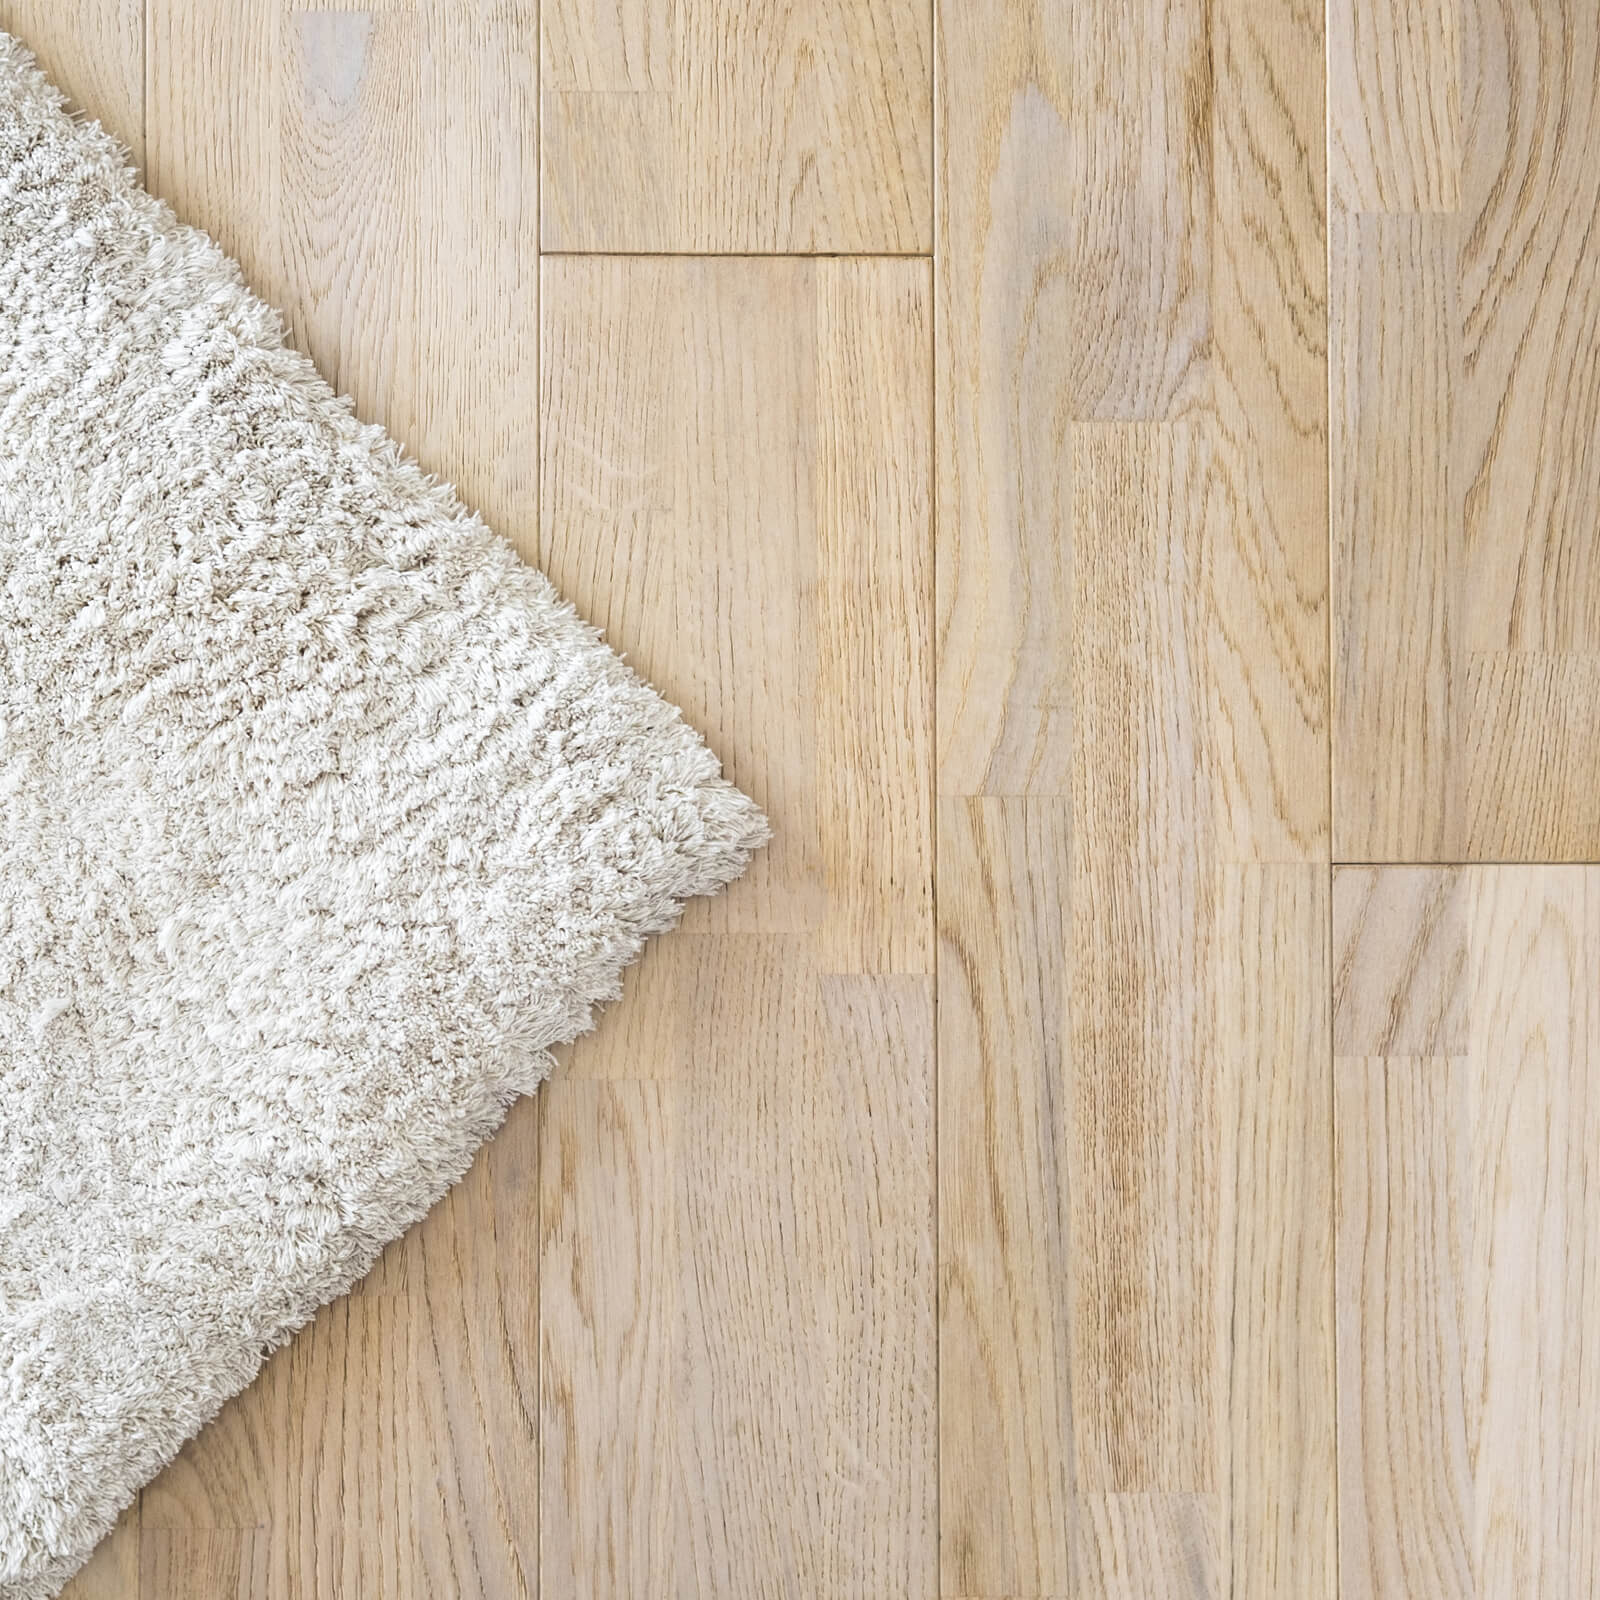 Hardwood faqs | Flooring 101